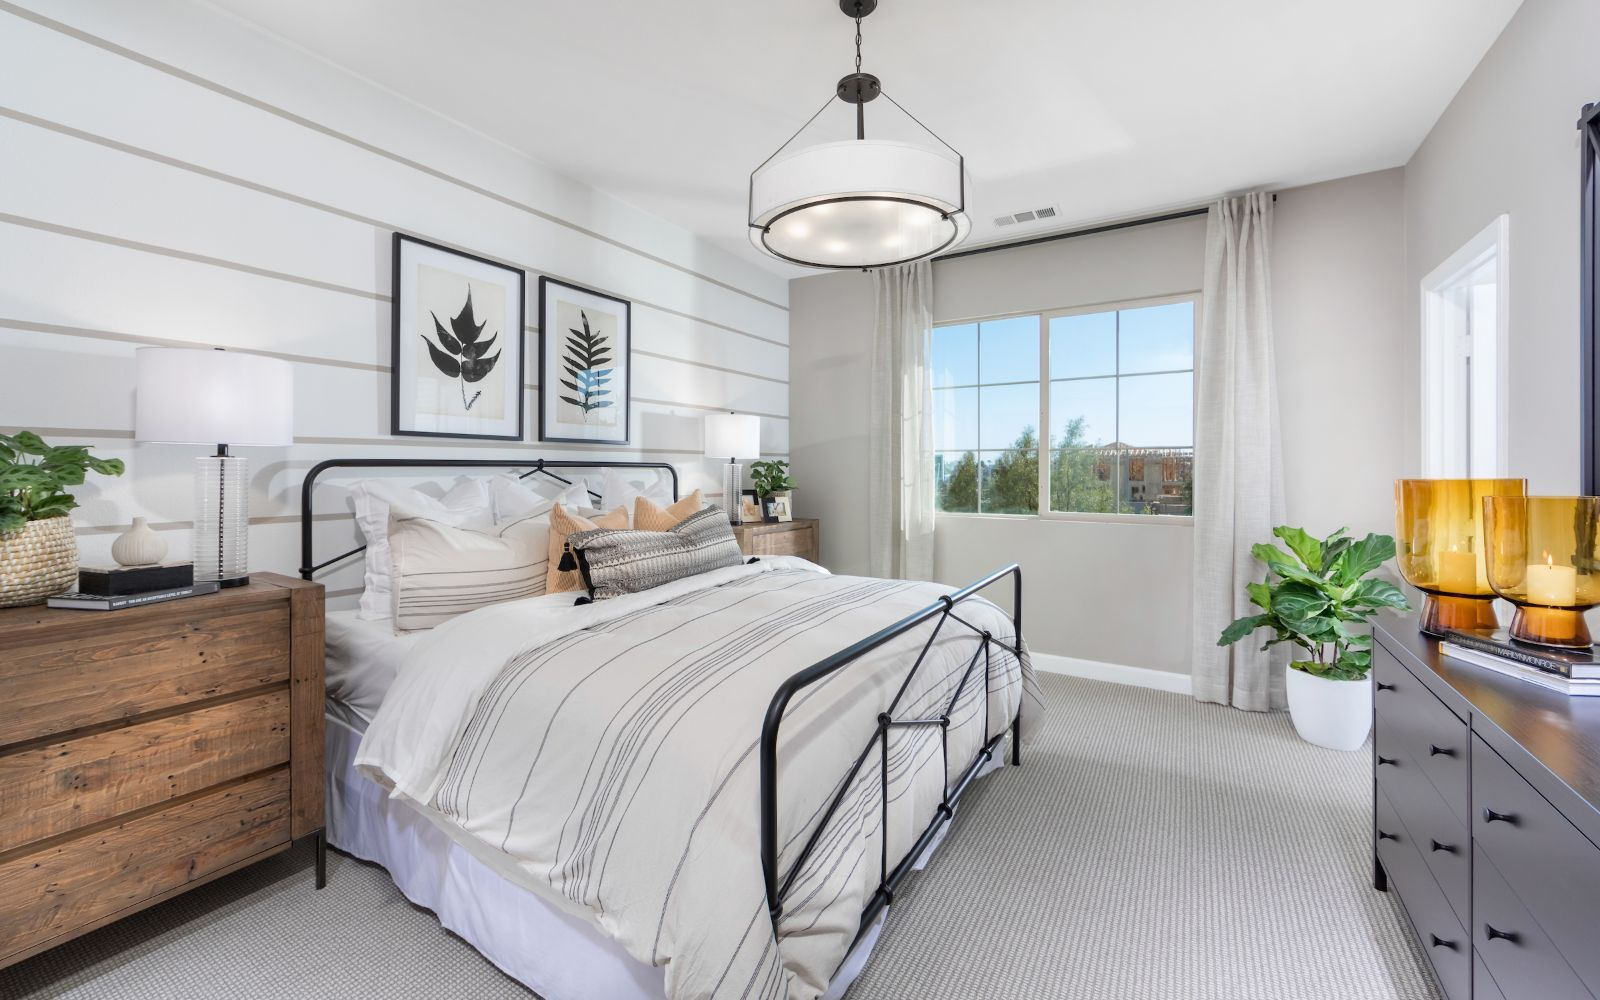 Bedroom featured in the Towns Plan 5 By Brookfield Residential in Orange County, CA